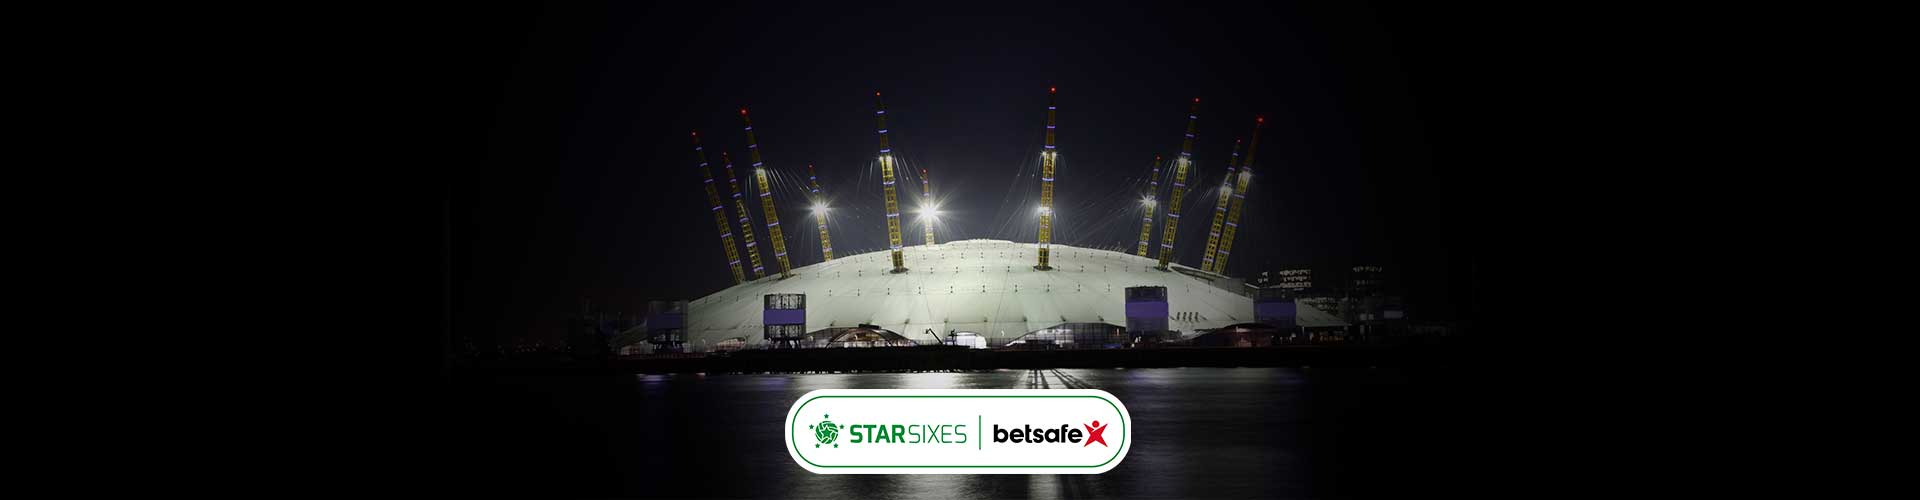 Betsafe Star Sixes